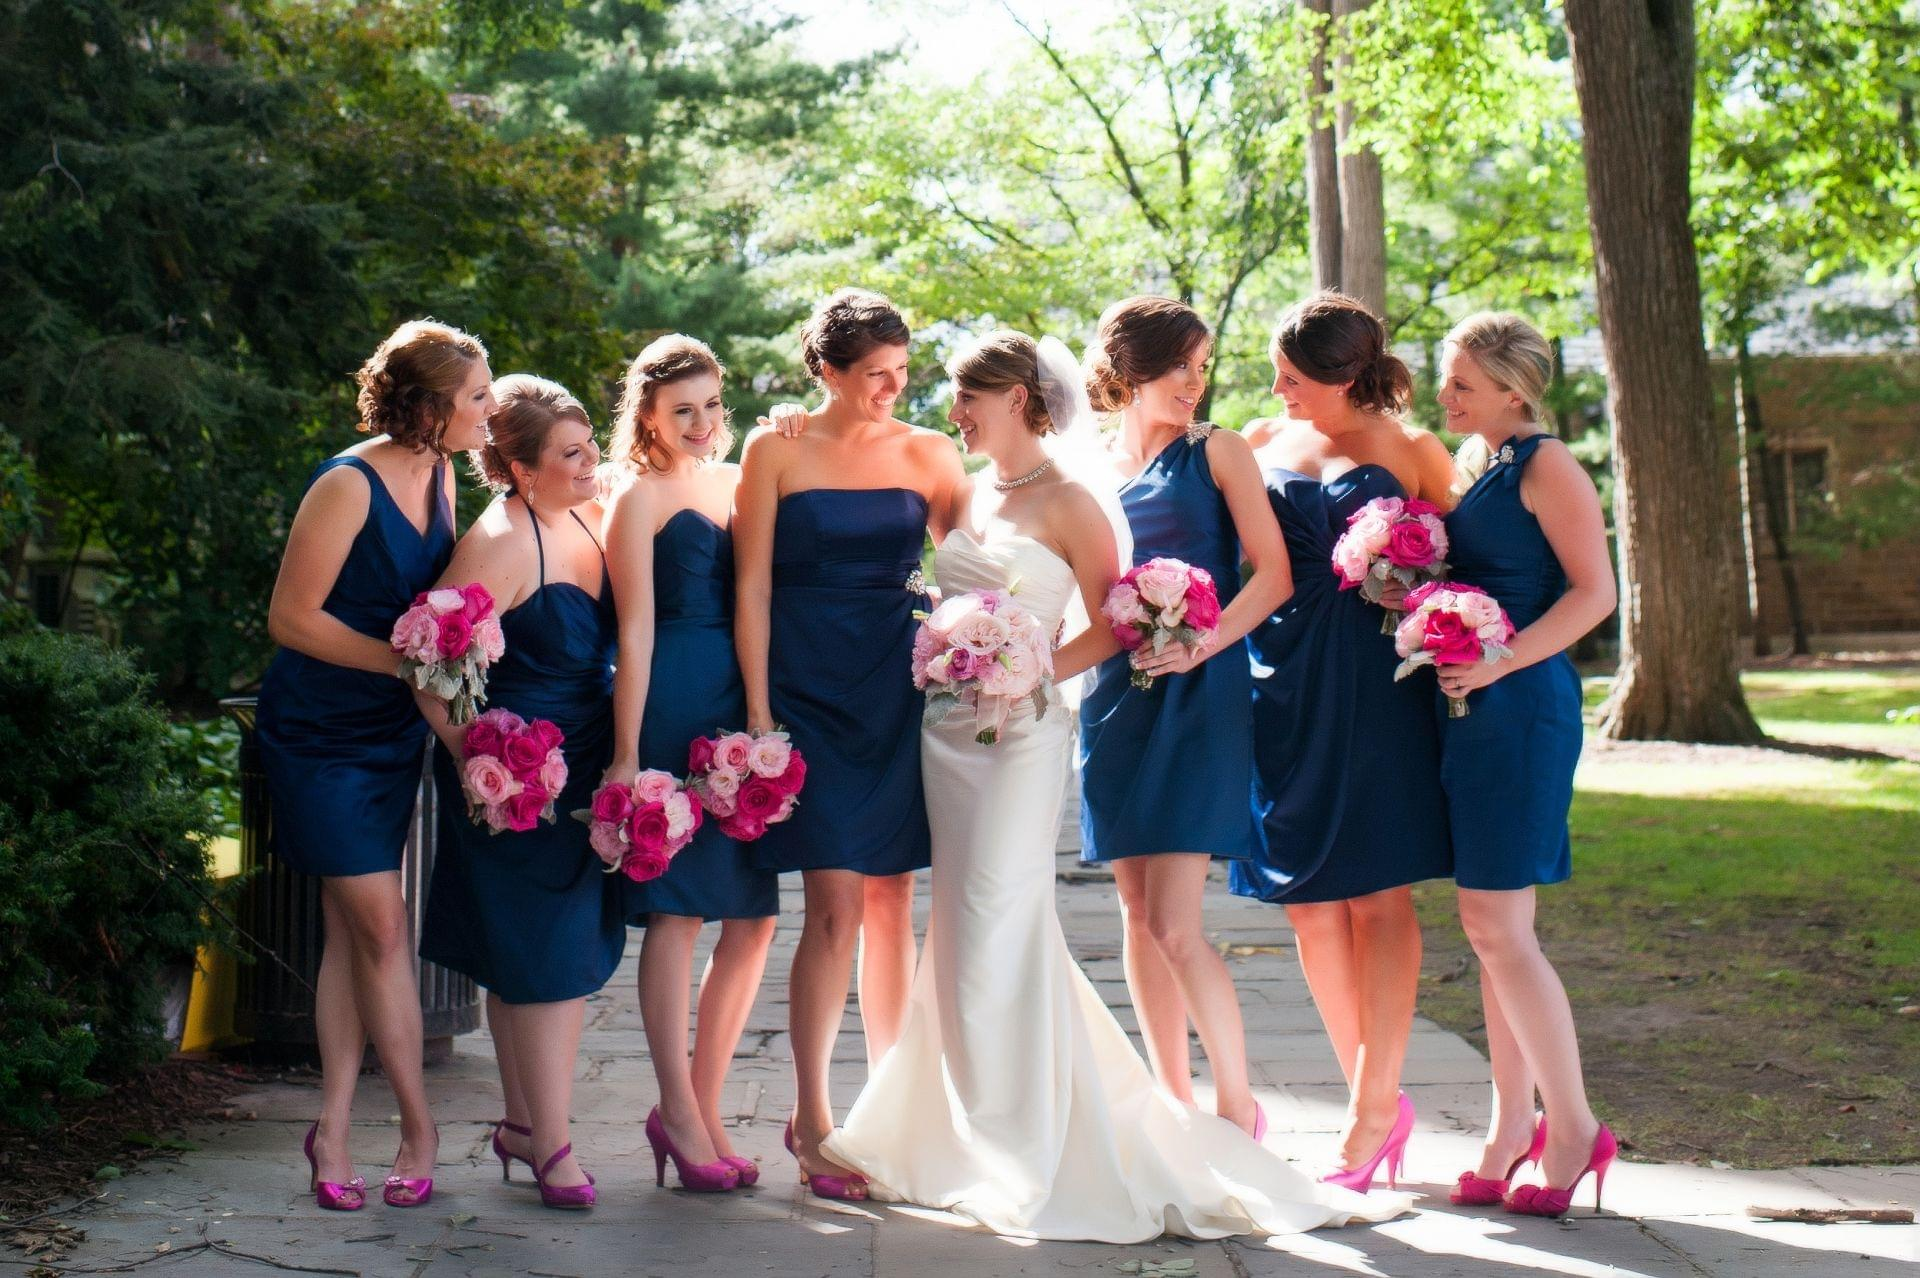 Bridal Shops - Charleston Weddings